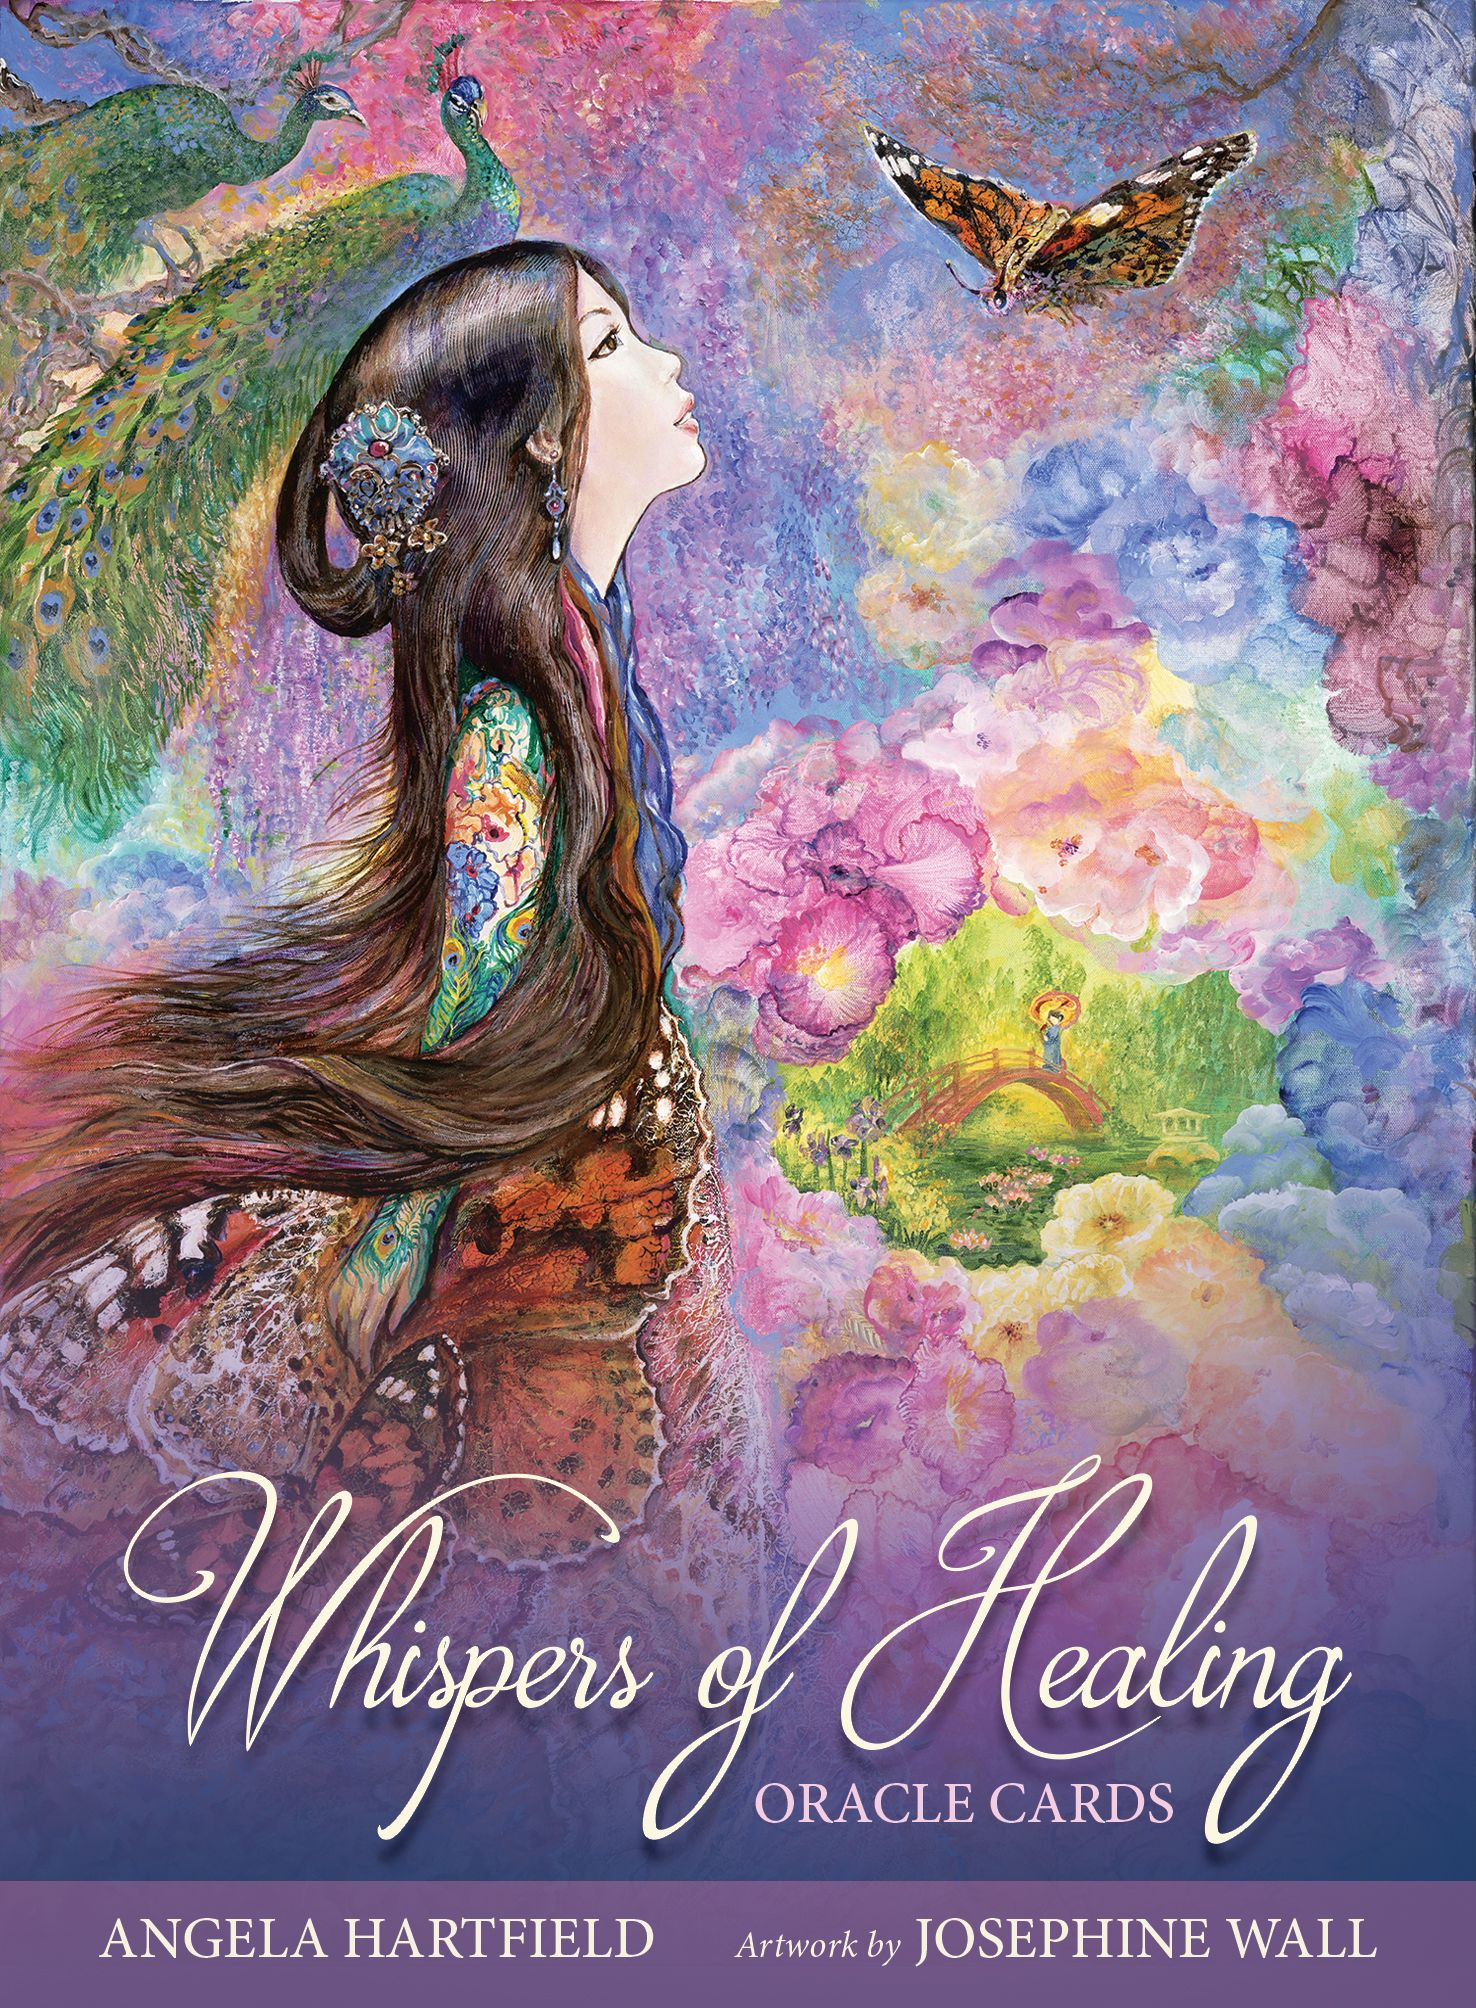 Coming This Winter Whispers Of Healing Oracle Cards From Angela